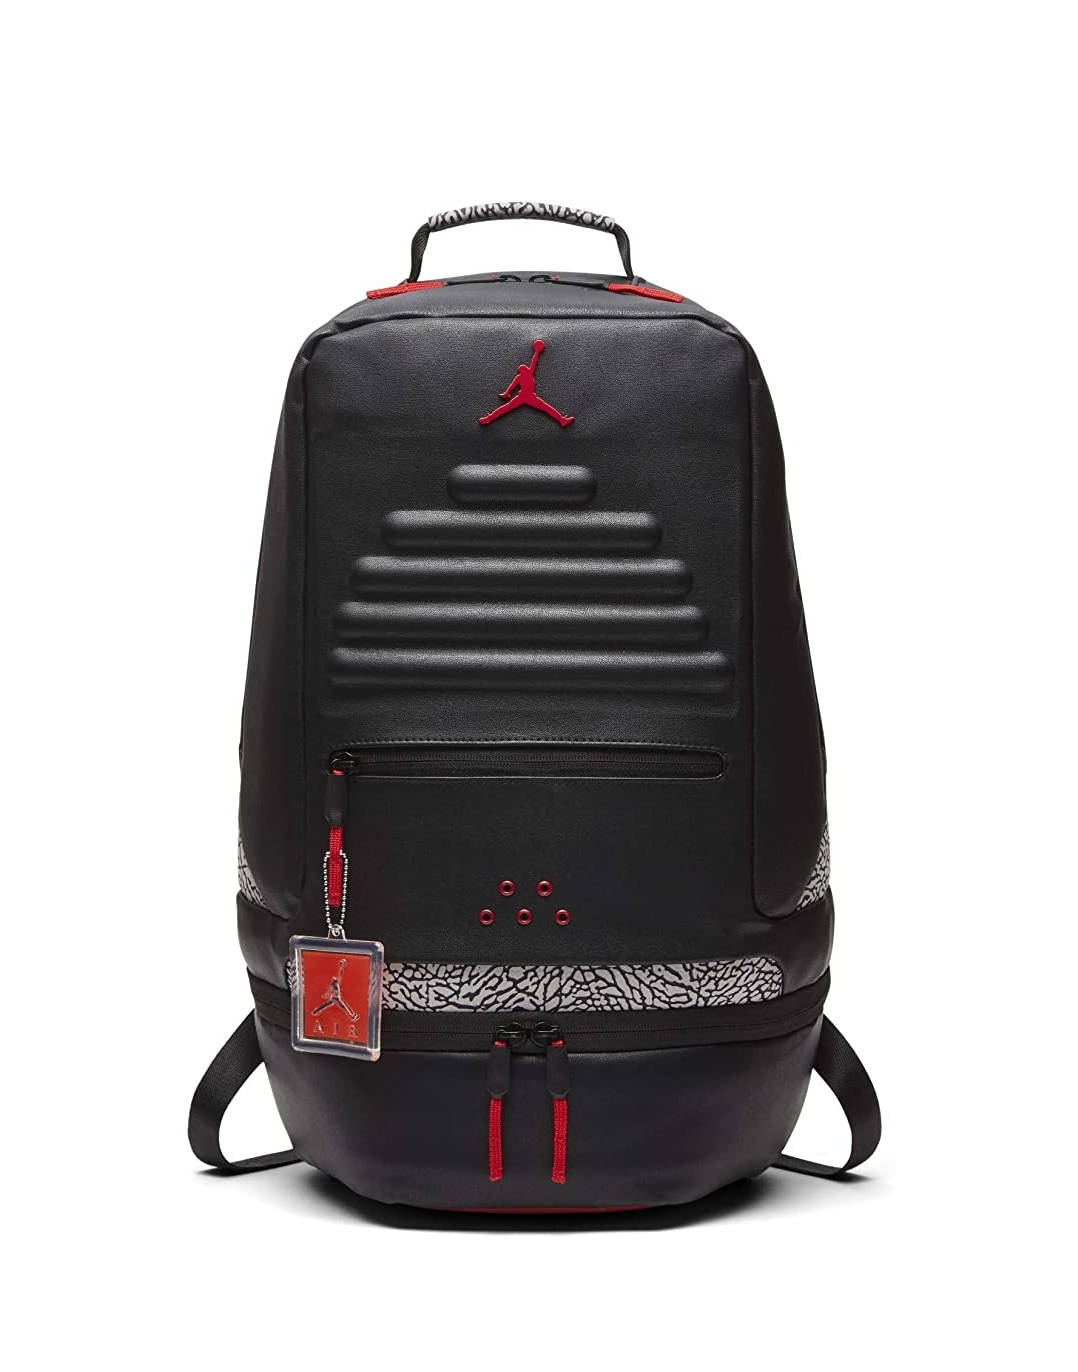 Best Jordan Backpacks for Laptops – 2021